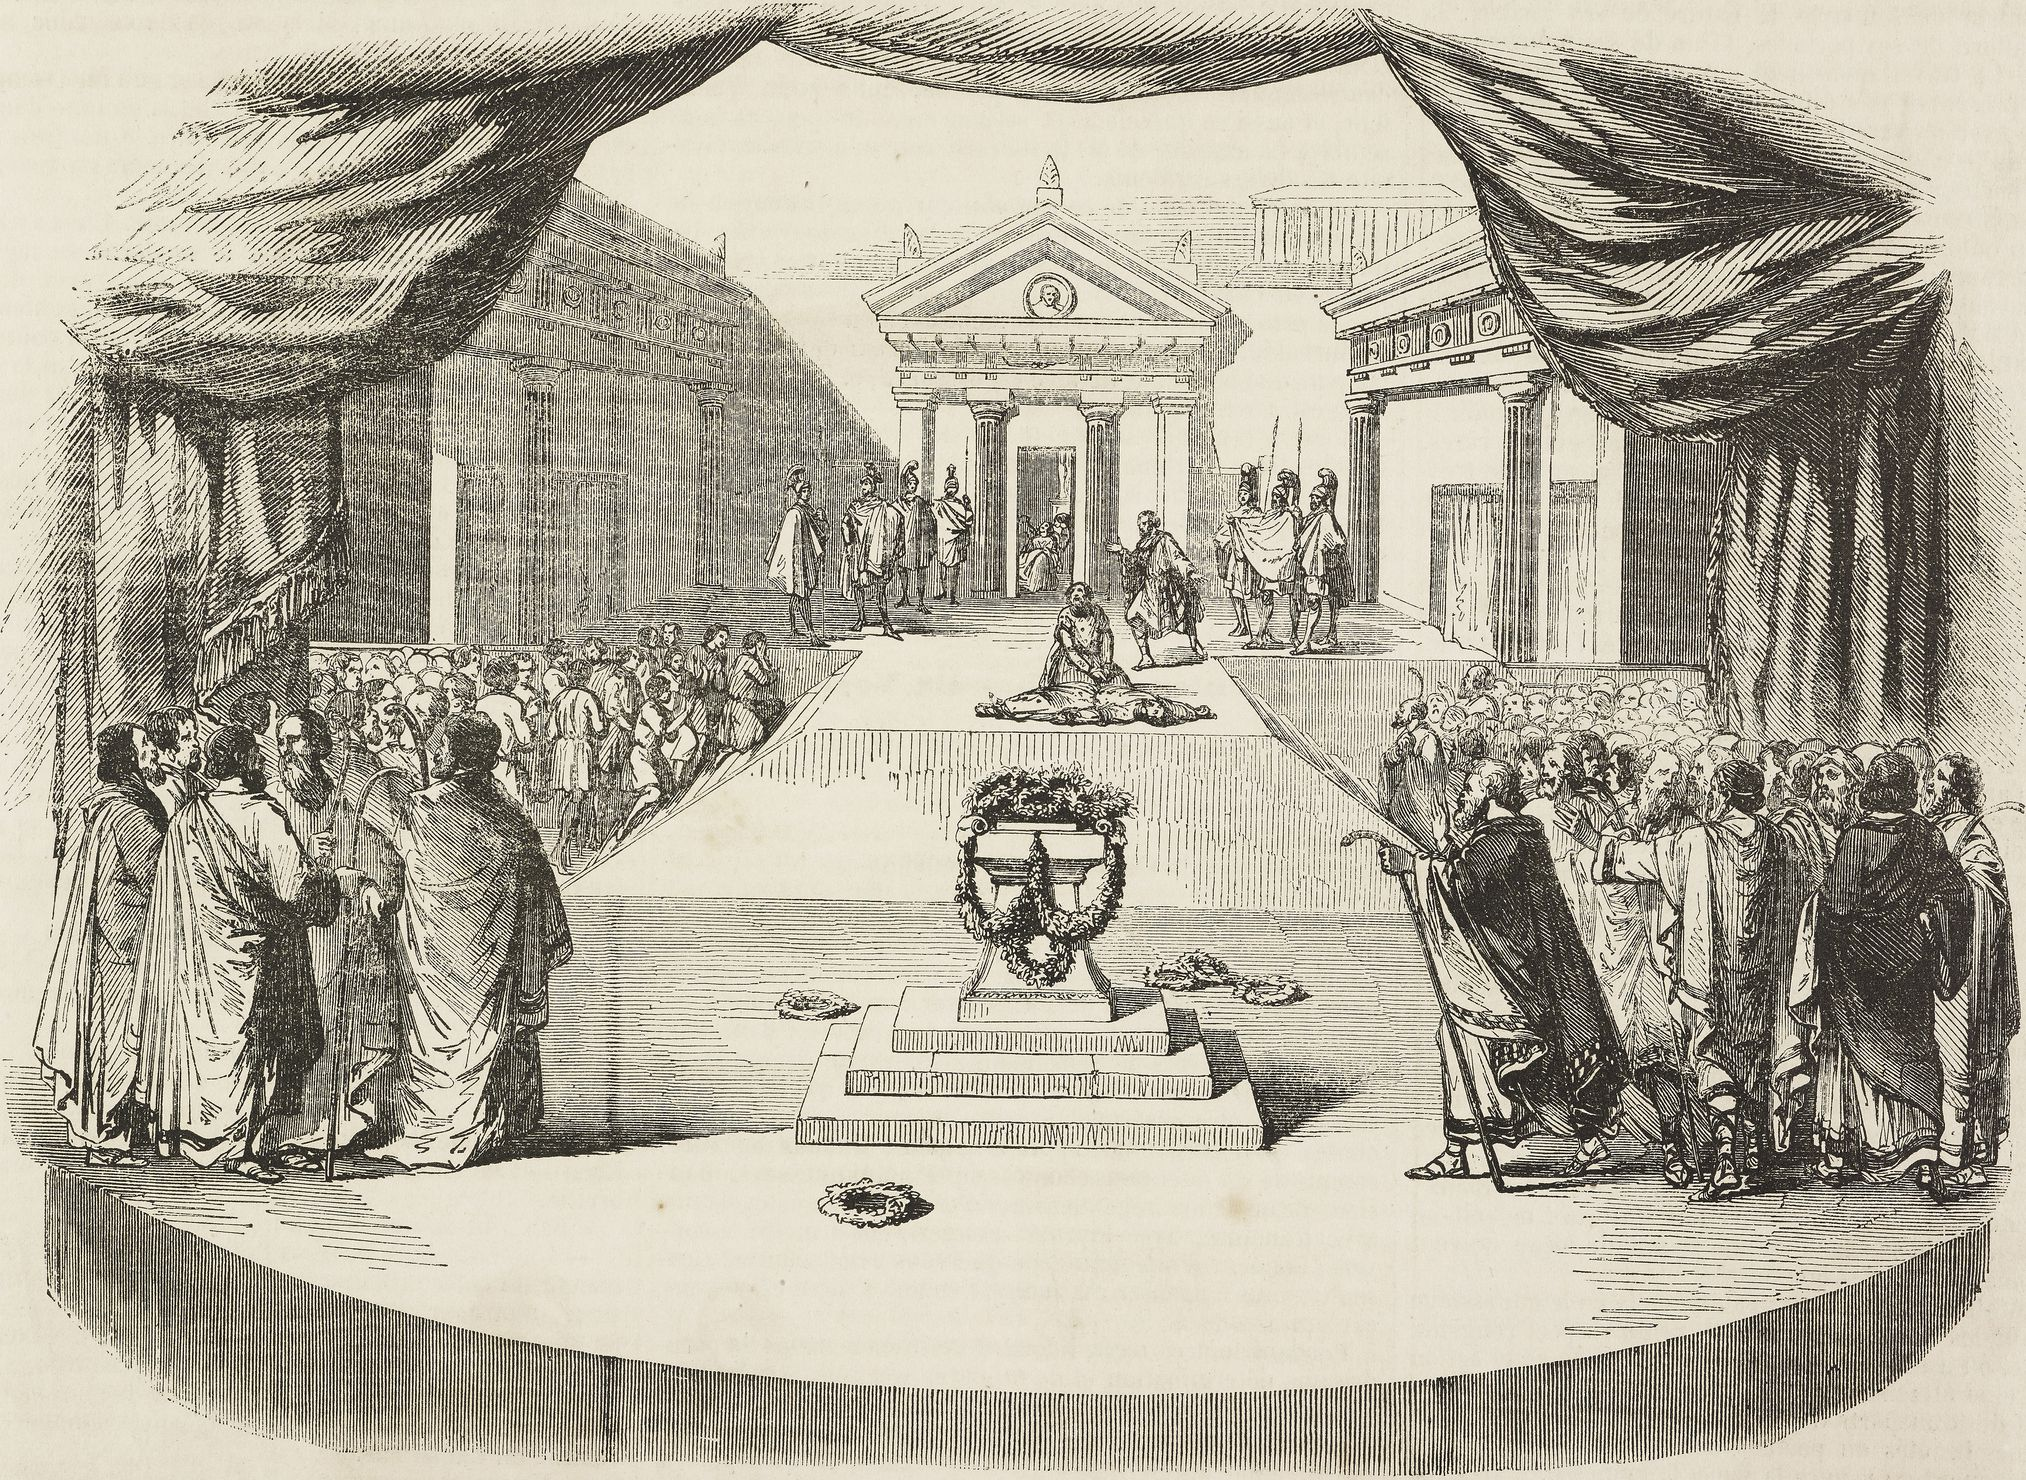 traditional society in the play antigone by sophocles The order in witch sophocles wrote them is - antigone, oedipus the king, and oedipus at colonus  antigone antigone is another important play, written by sophocles.